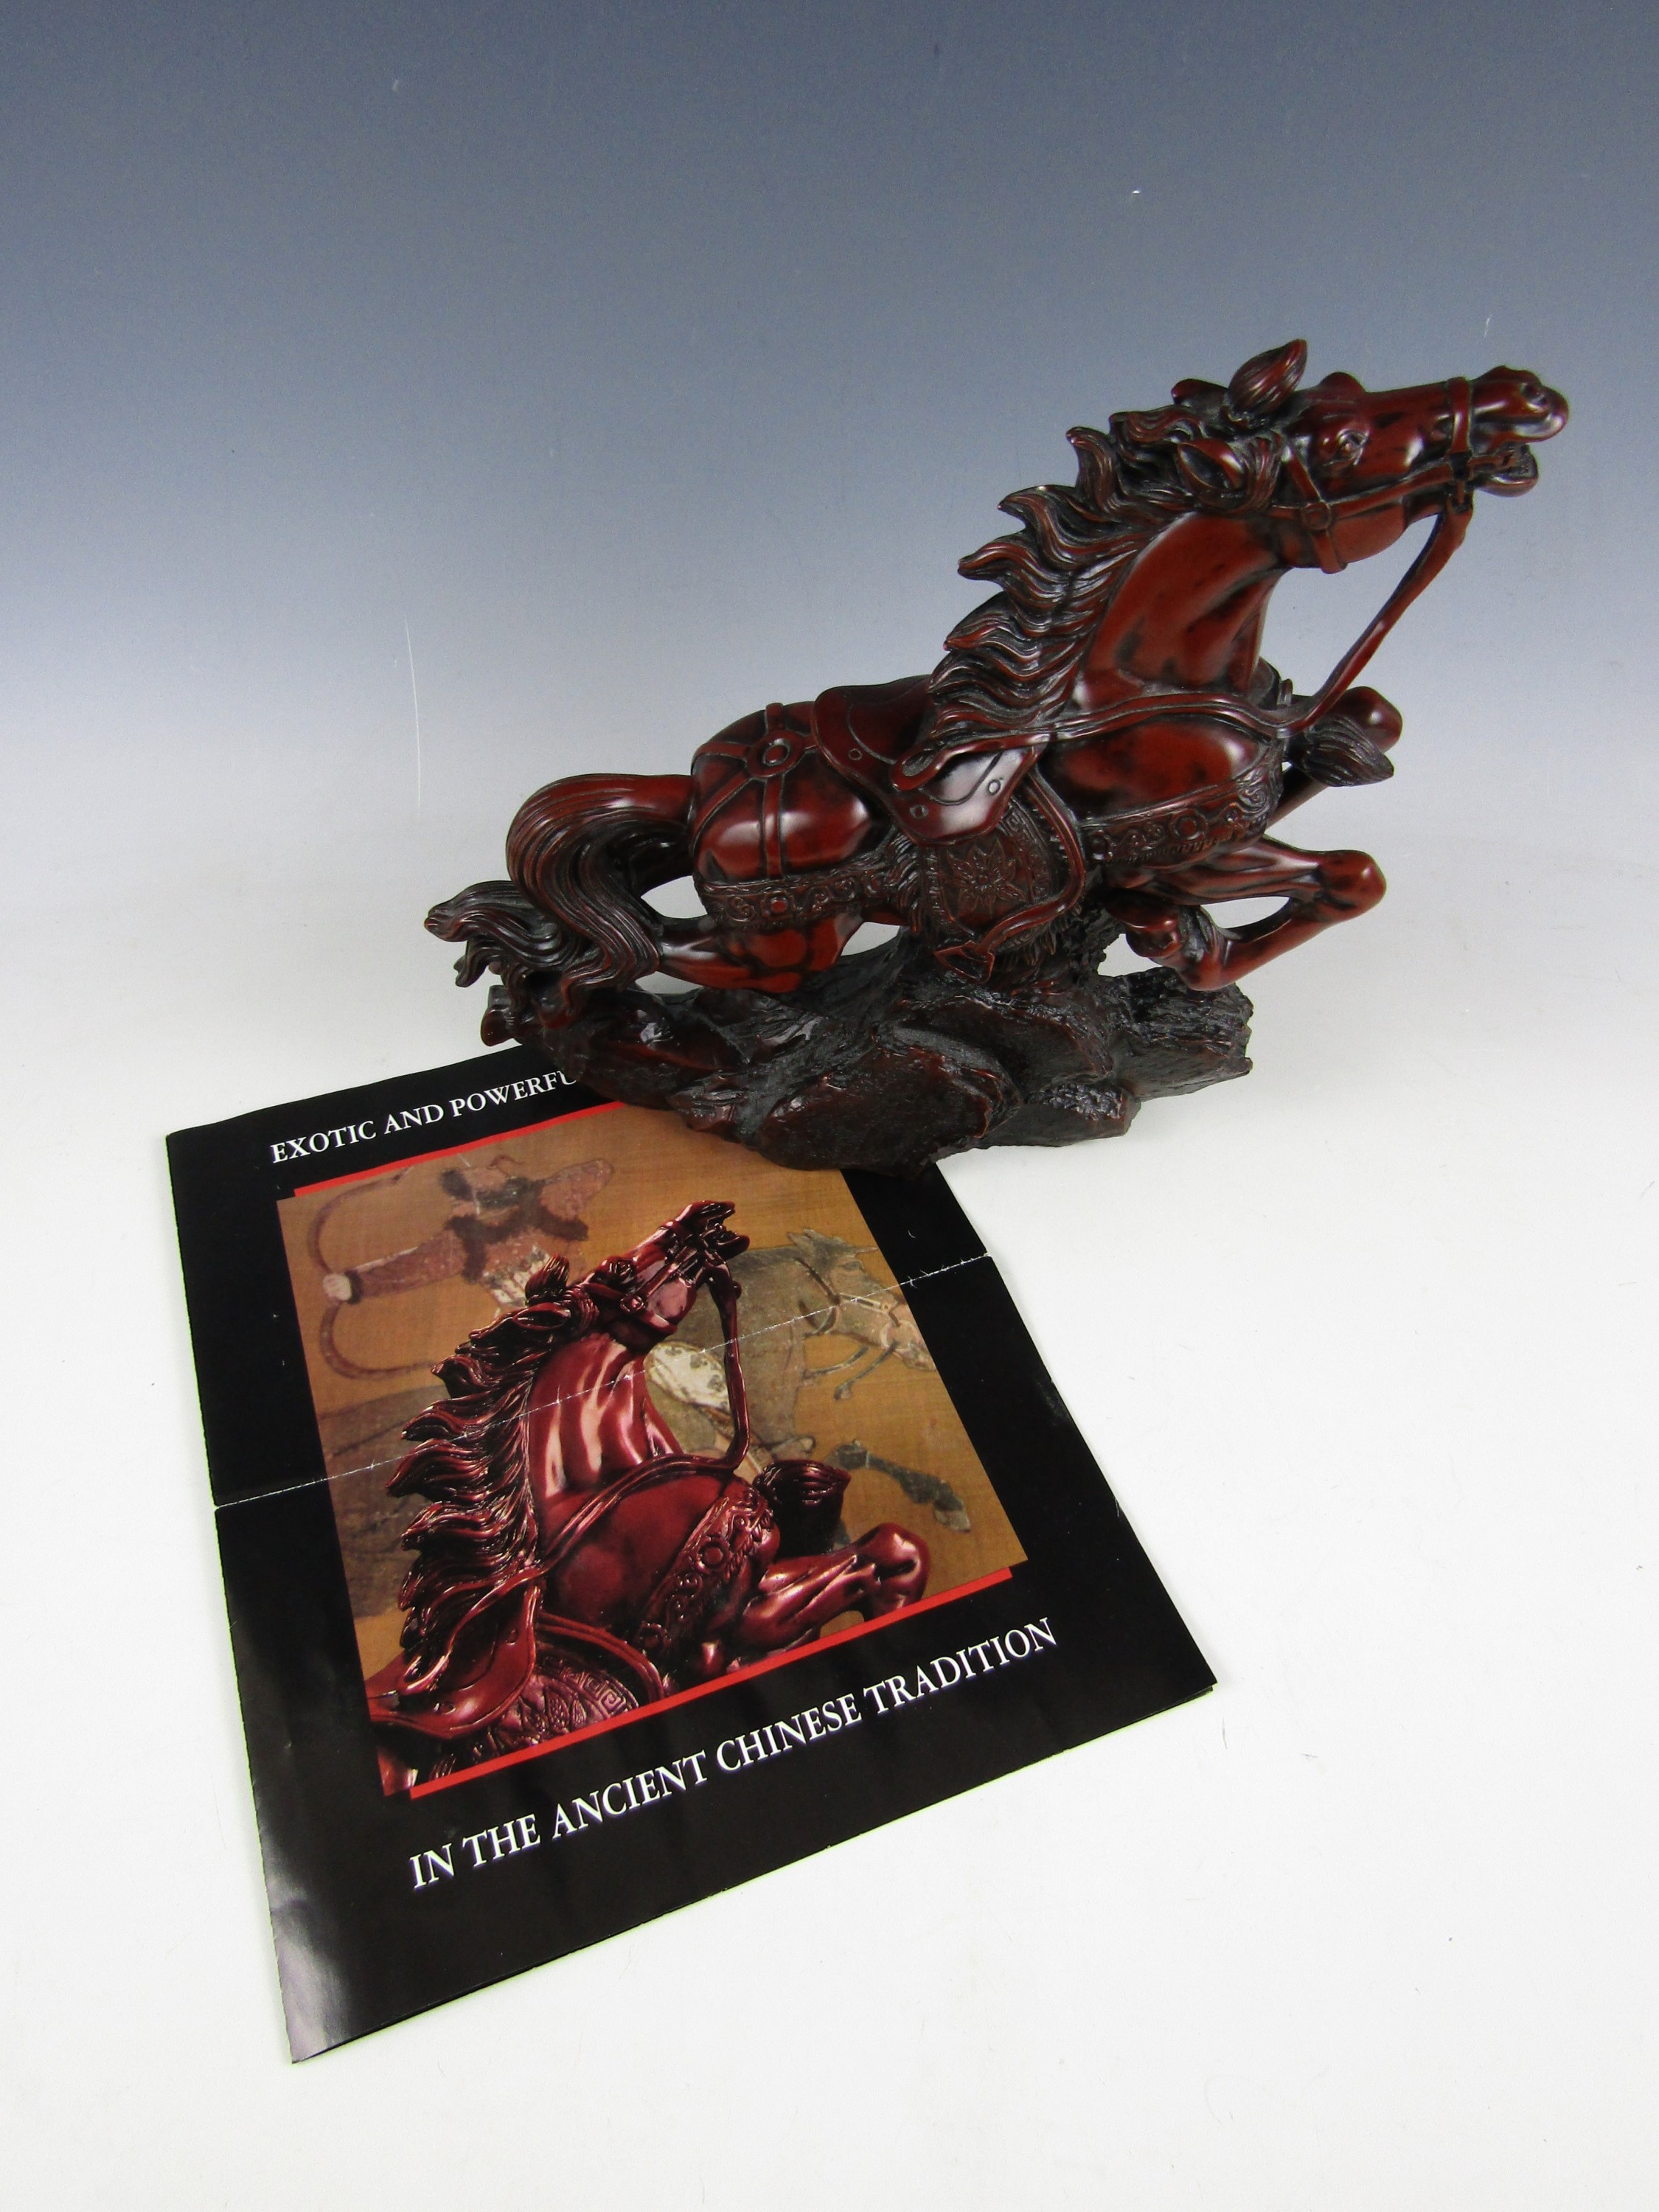 Lot 51 - A Franklin Mint figurine The Mighty Warhorse of Genghis Khan